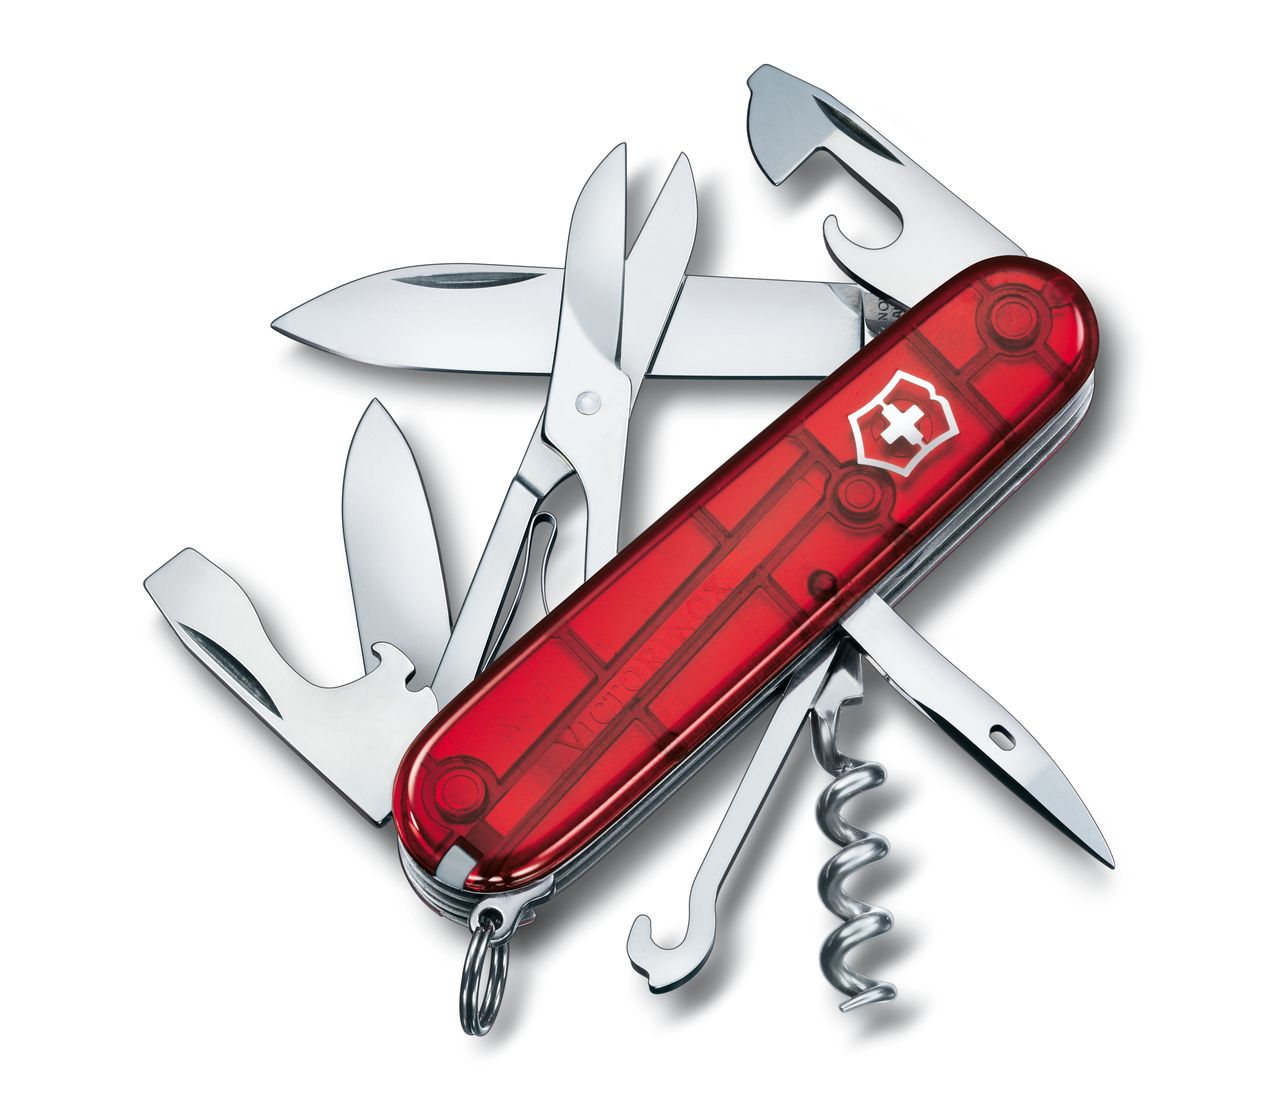 Victorinox Climber In Red Transparent 1 3703 T